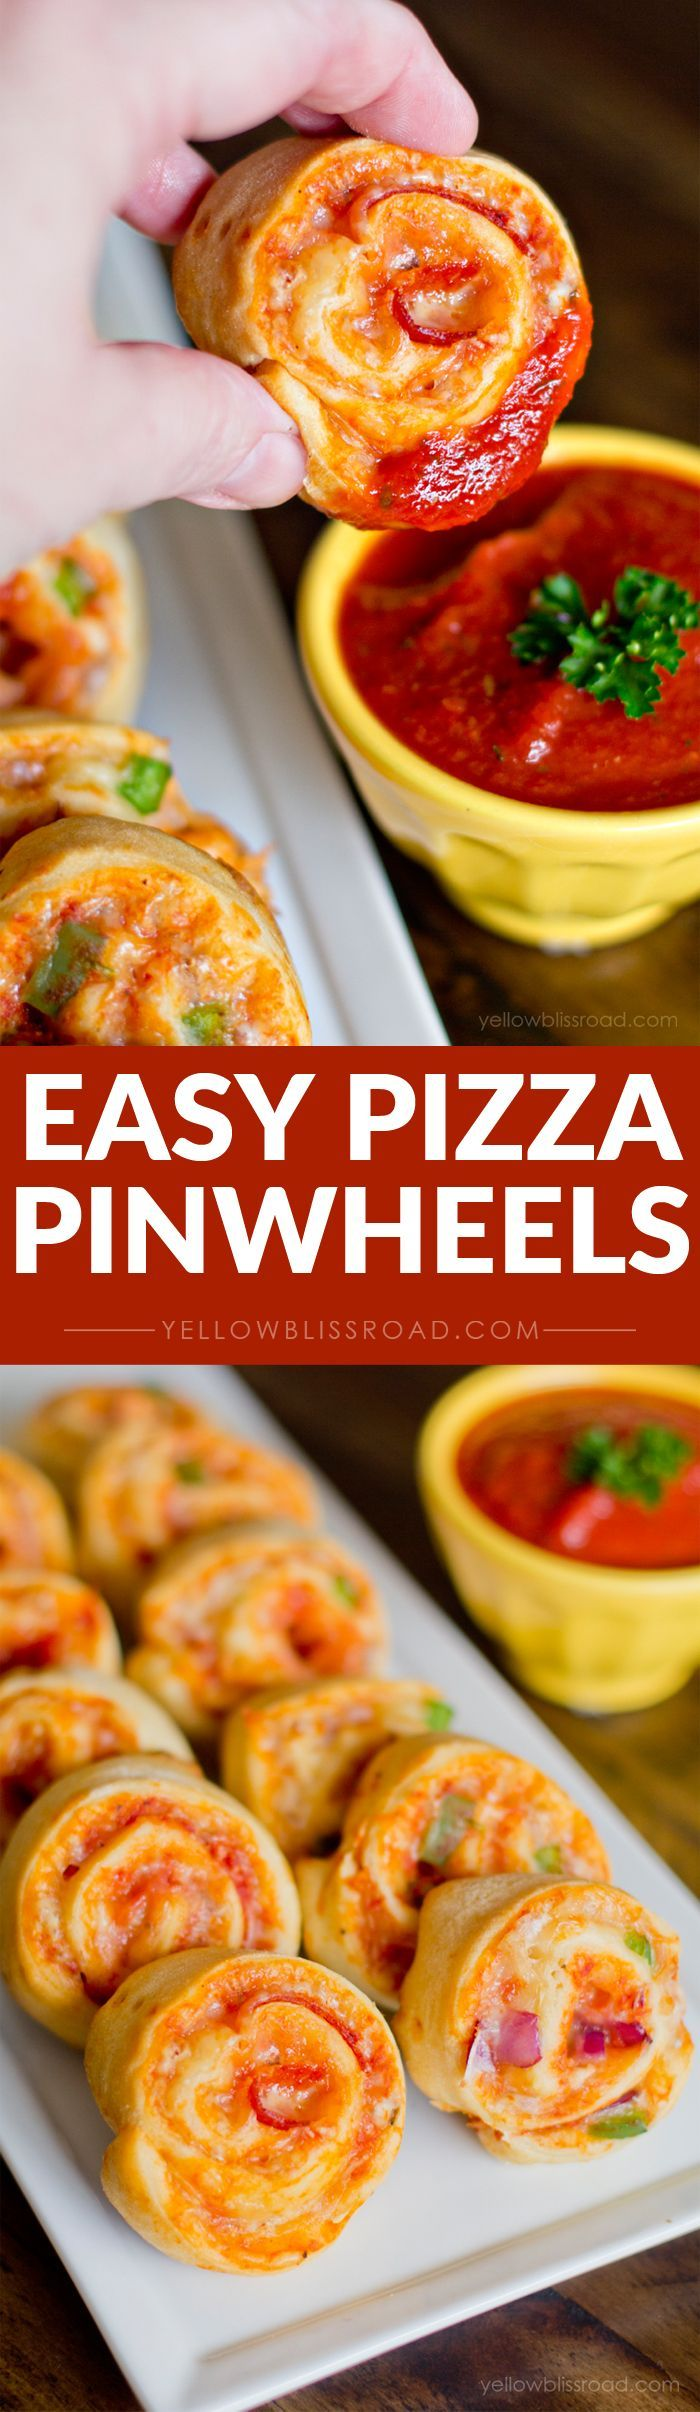 Easy Pizza Pinwheels - A fun snack and the perfect finger food!